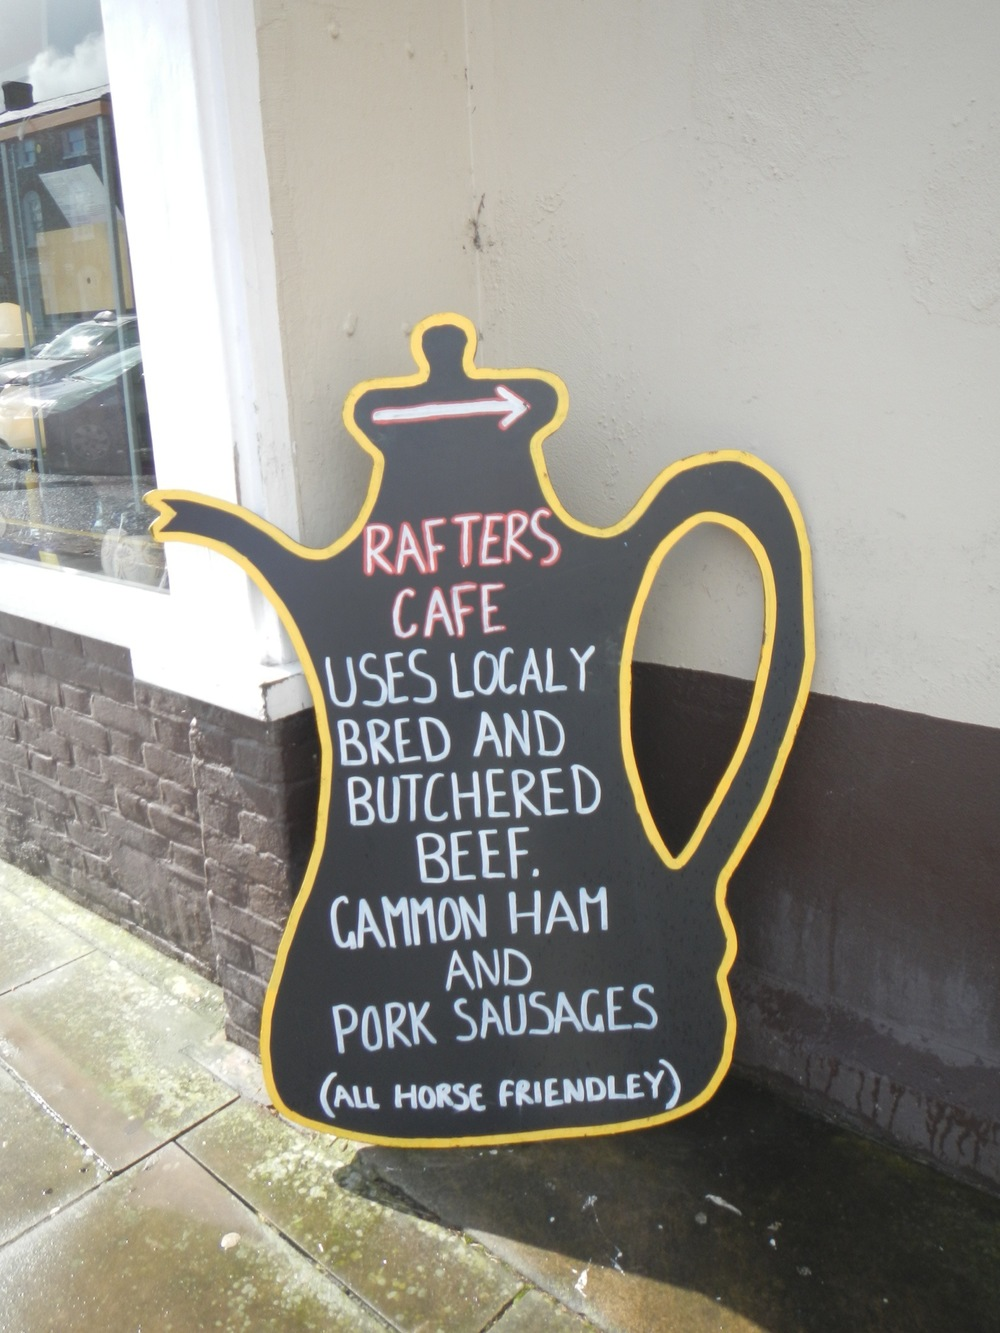 Cute sign for Rafters Cafe